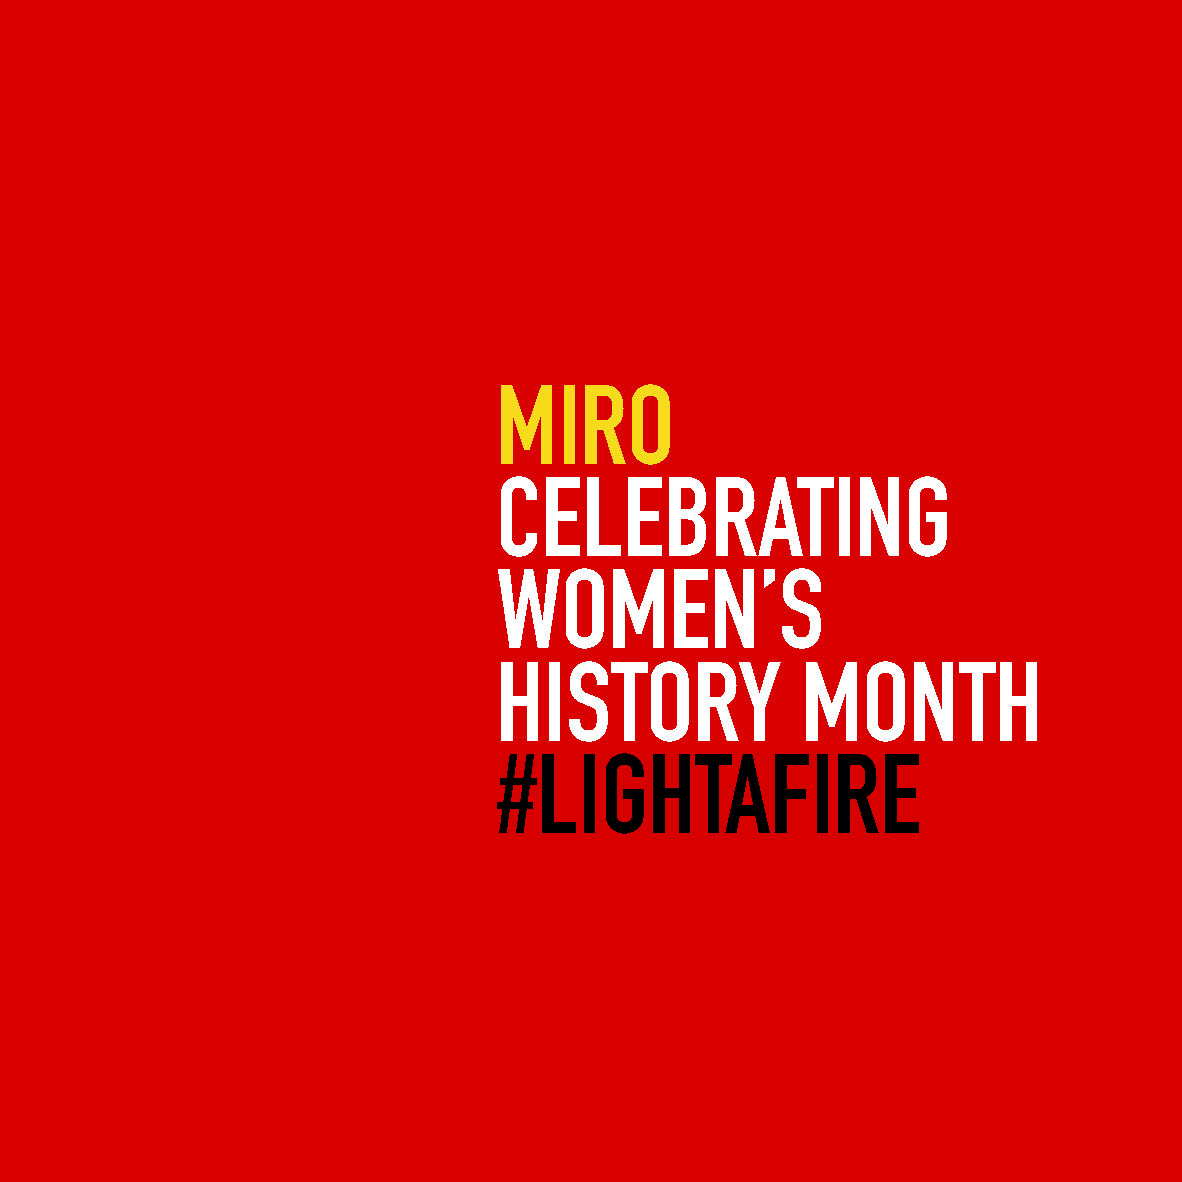 The Women in MIRO - 8 of 8